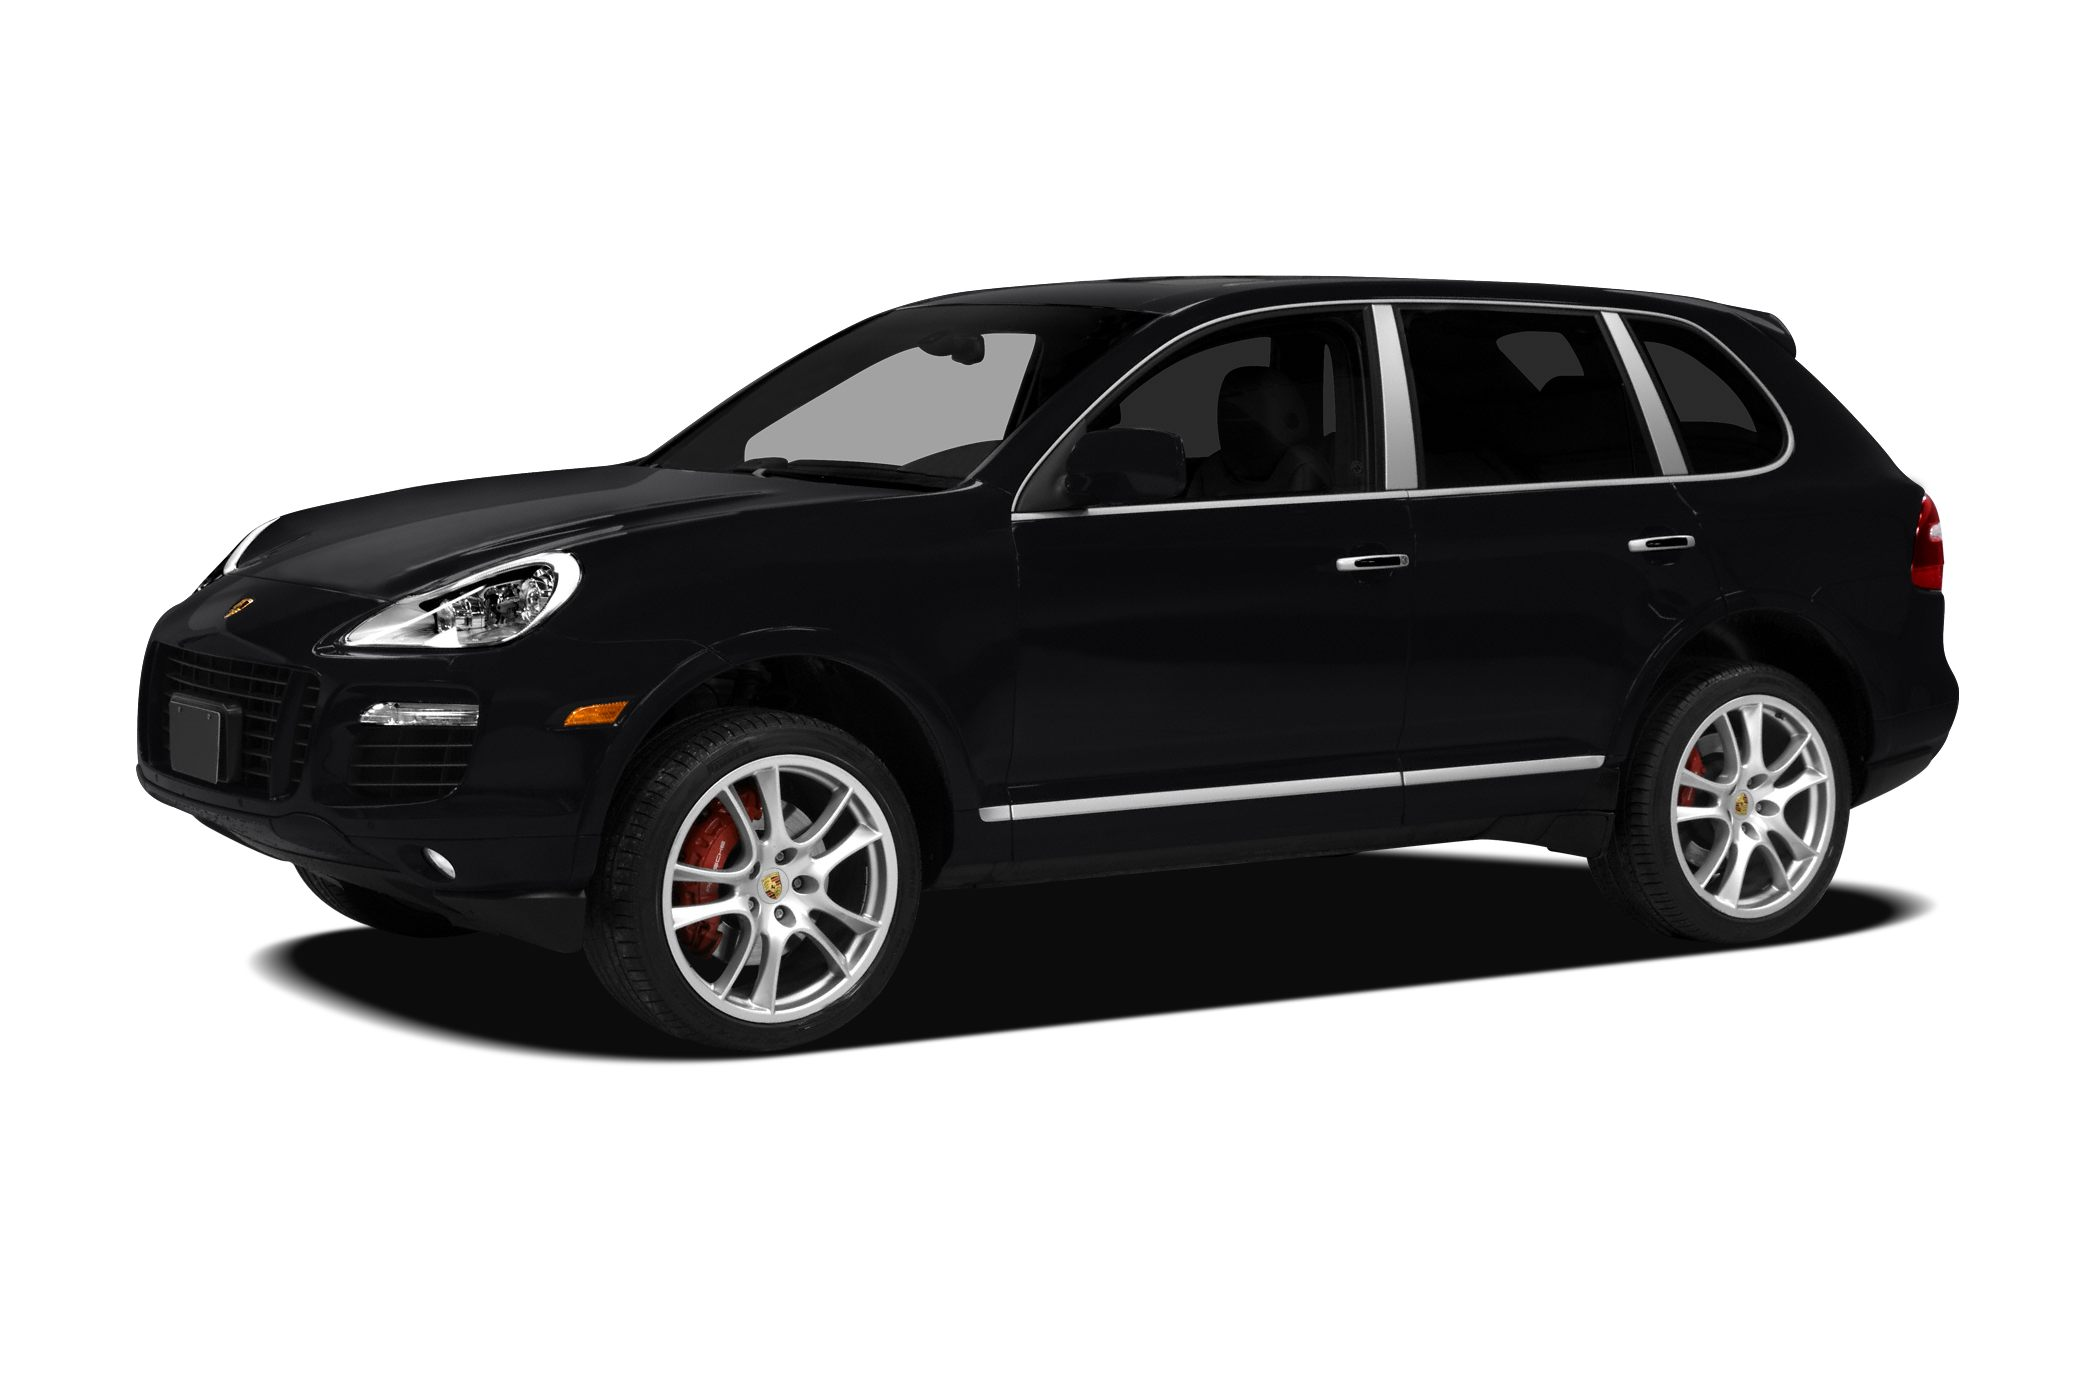 2008 Porsche Cayenne Gts 4dr All Wheel Drive Specs And Prices